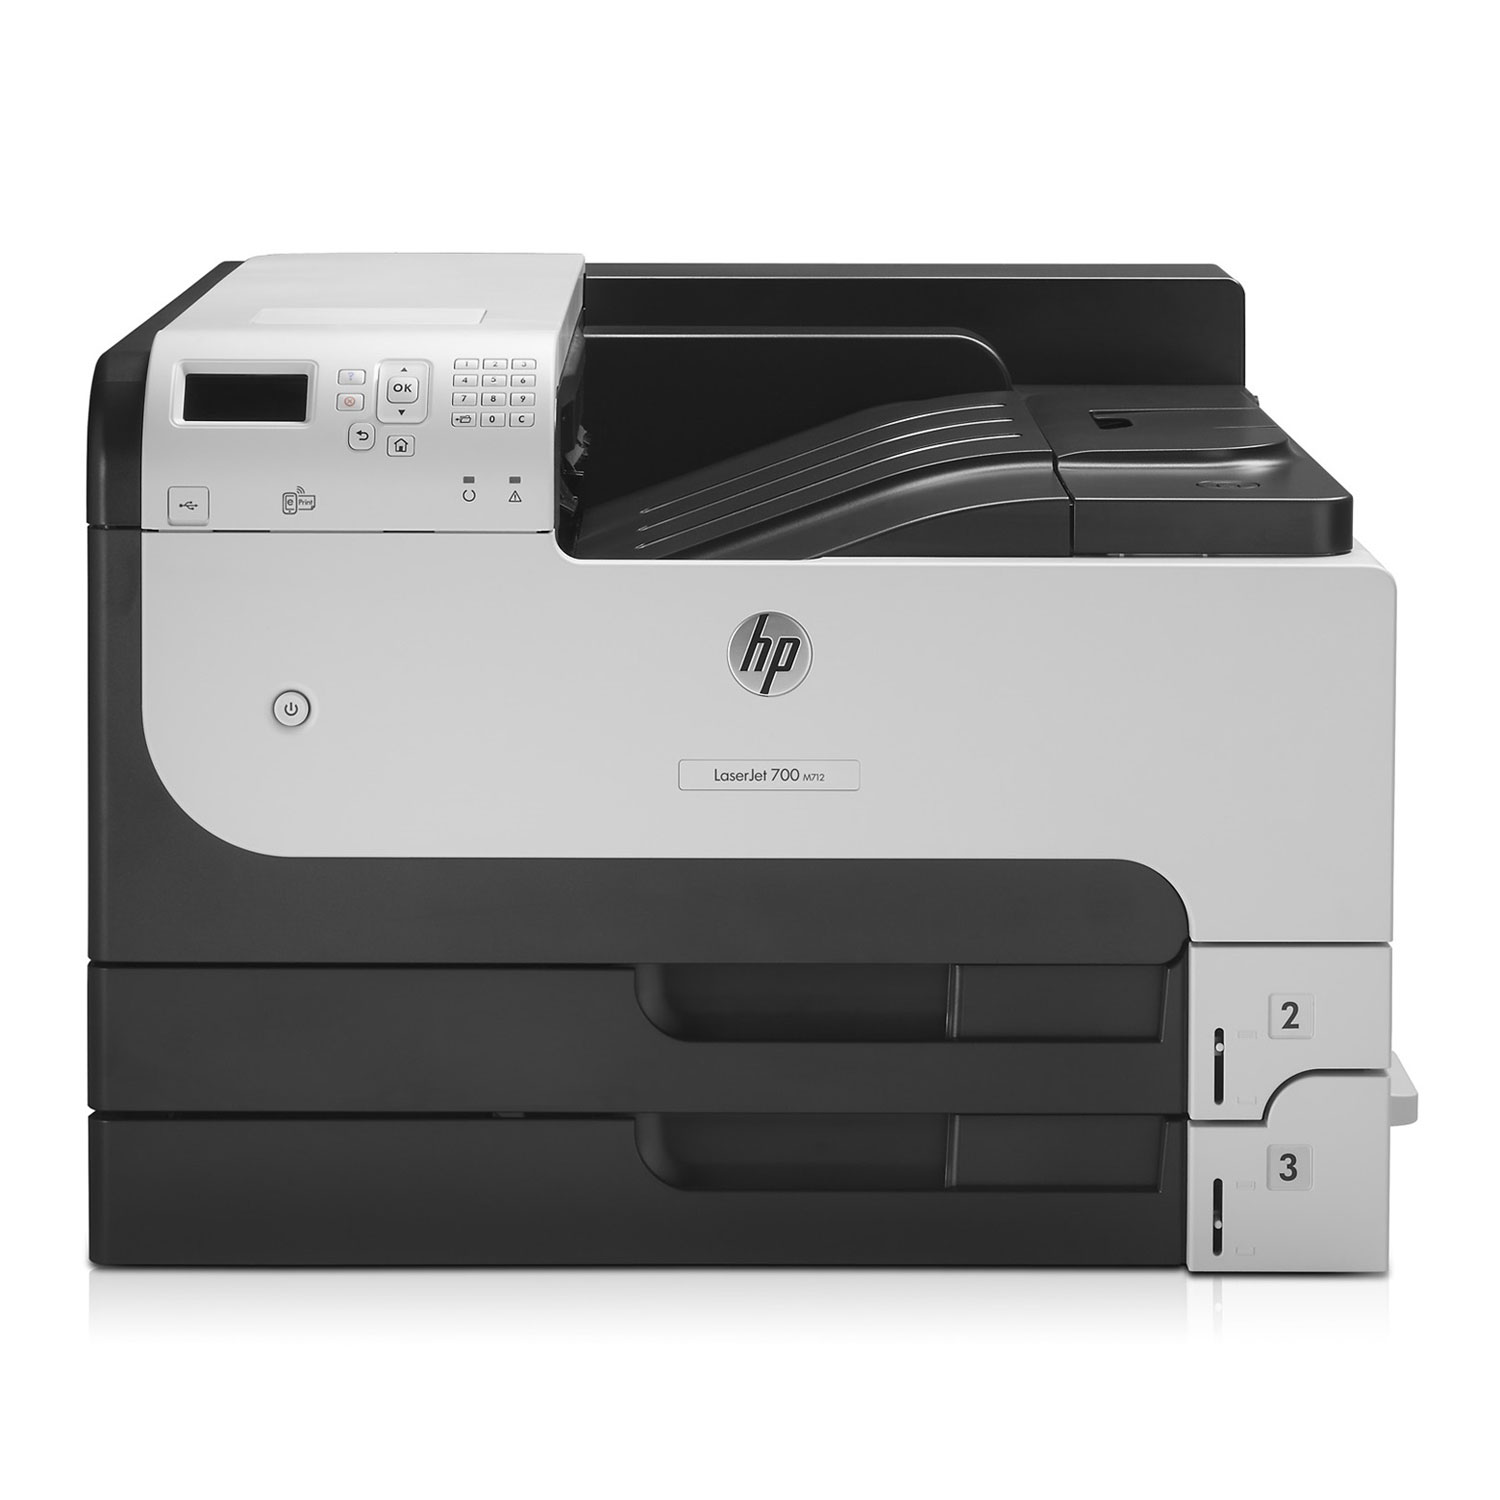 hp laserjet enterprise 700 m712dn imprimante laser hp sur. Black Bedroom Furniture Sets. Home Design Ideas